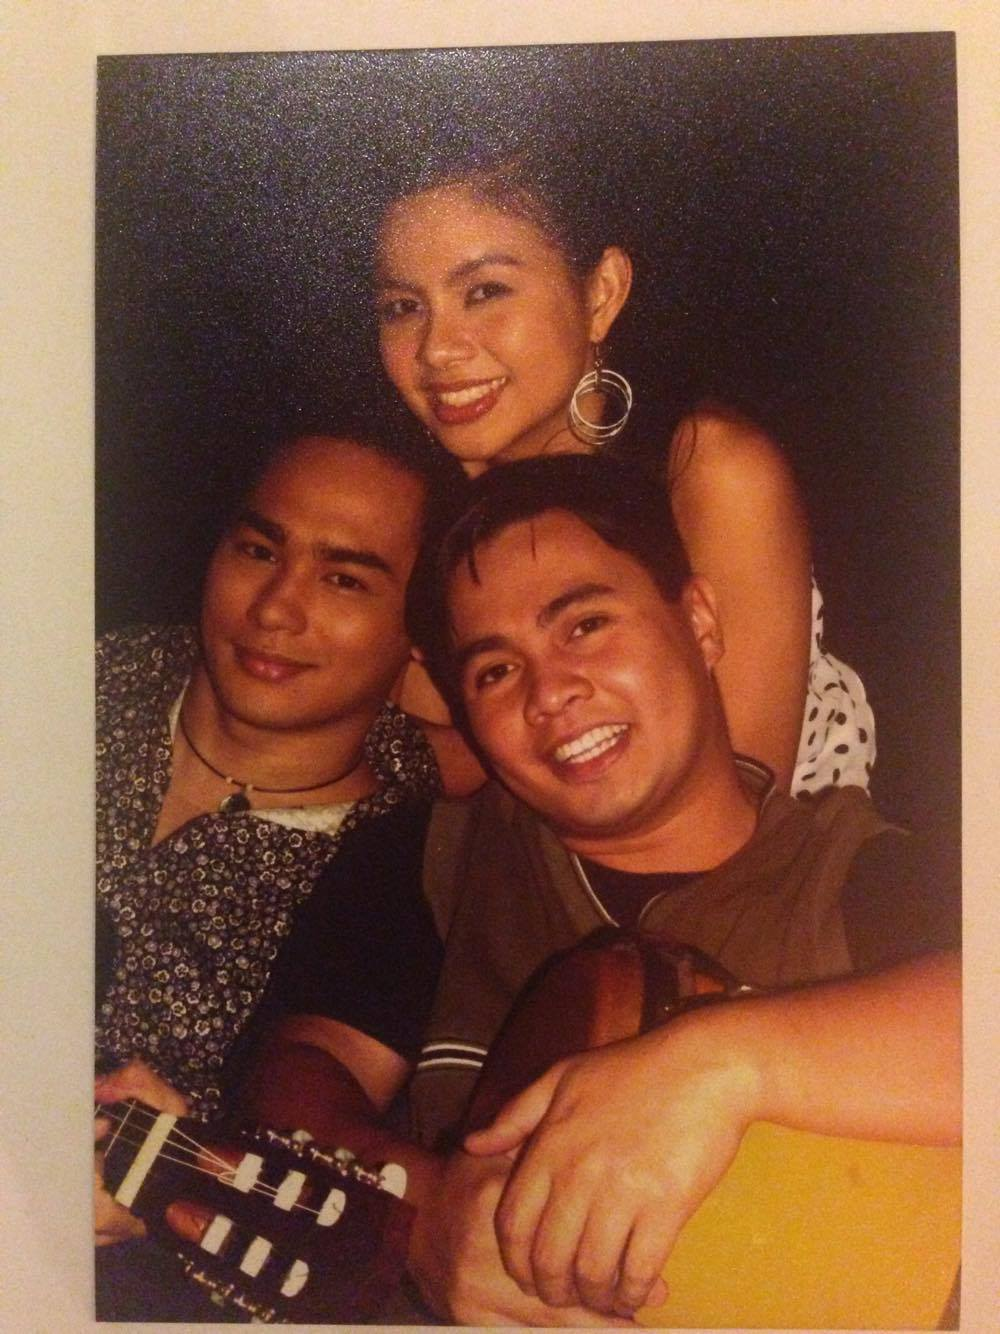 Sitti and the Cubanos - Brian Soriano on guitars and Ryan Angeles on percussions. :)